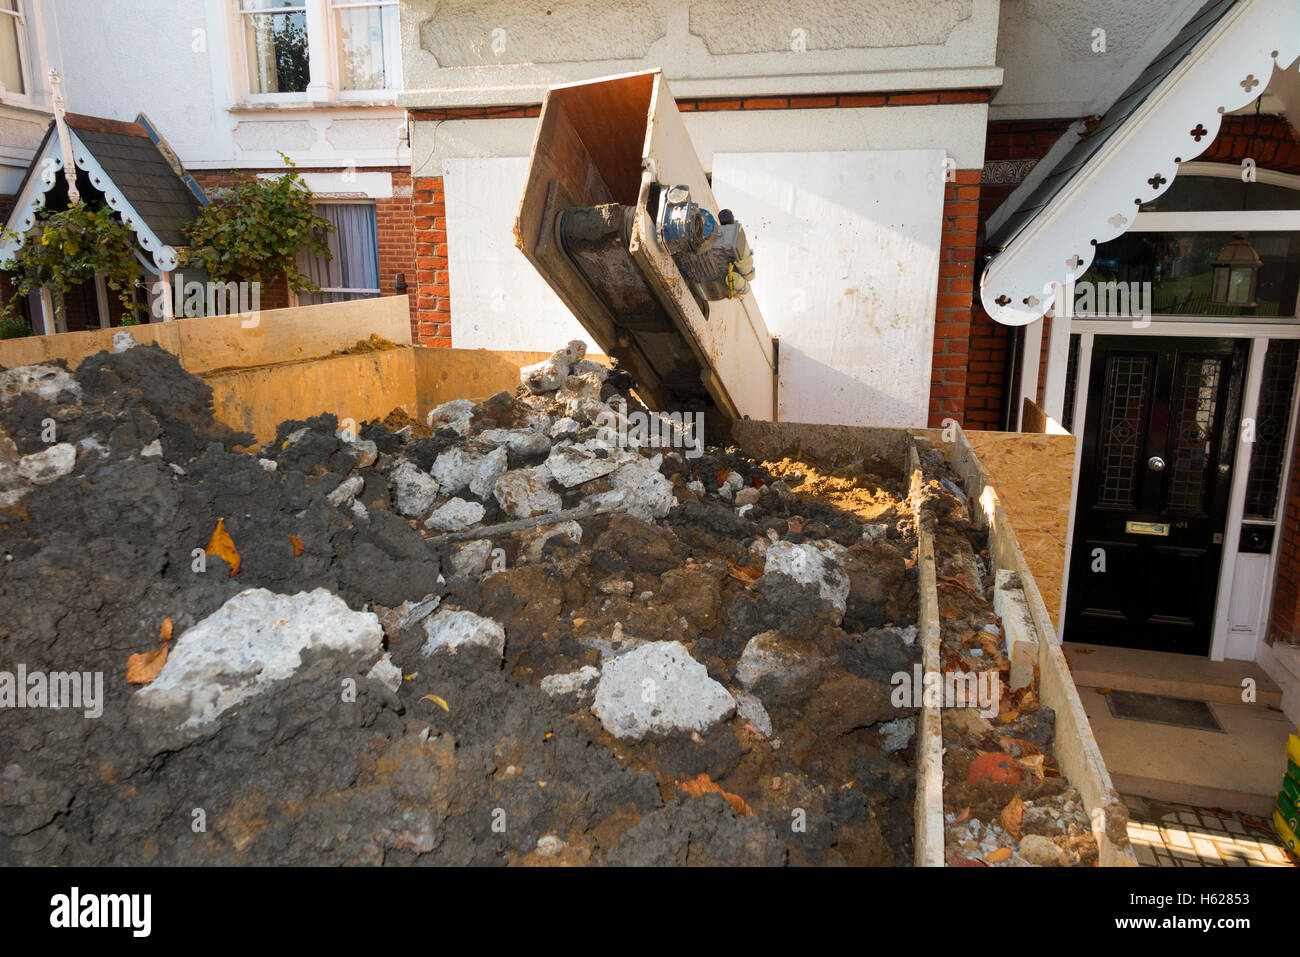 Machine removing soil from basements excavation / excavating the basement / extension / extending property house - Stock Image